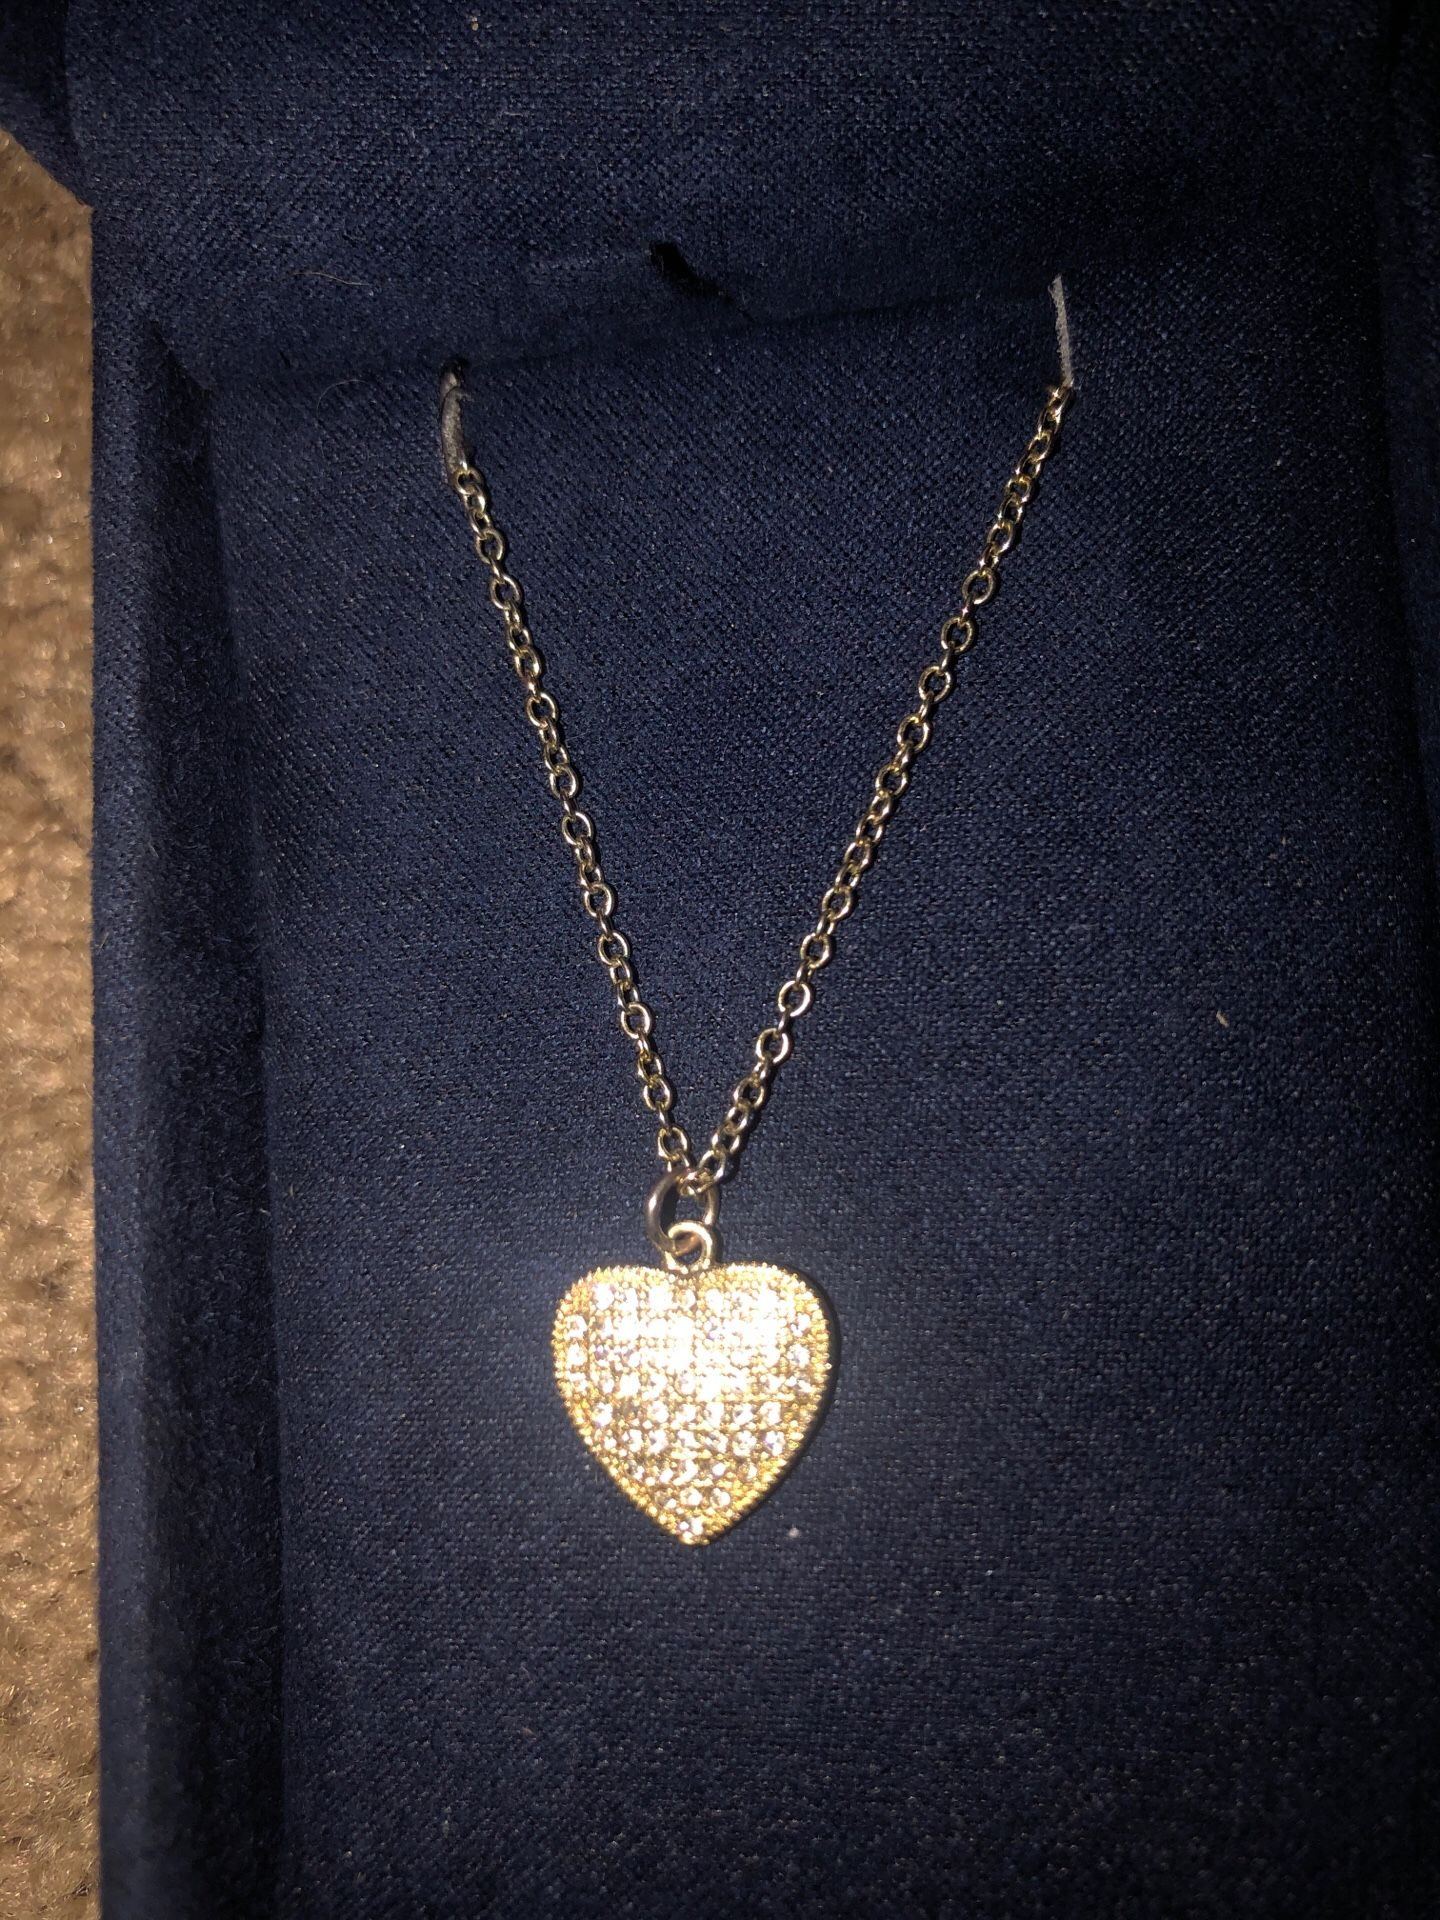 Heart shaped necklace in rose gold. It's stunning!